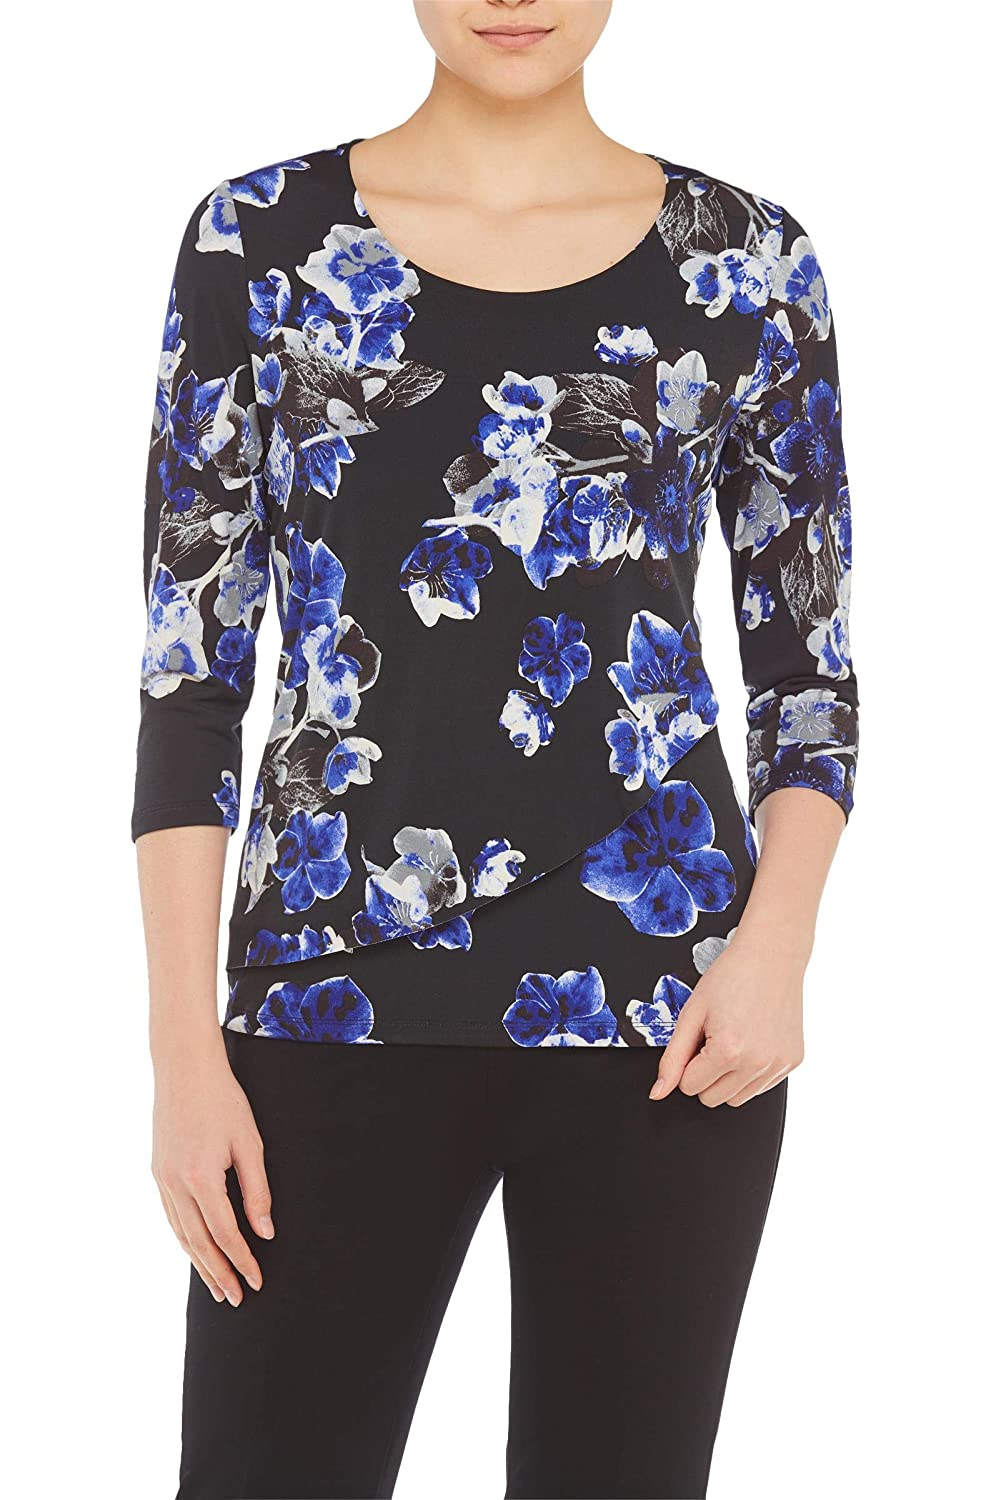 Plus Layered Crossover Top Nygard 4S4M5825